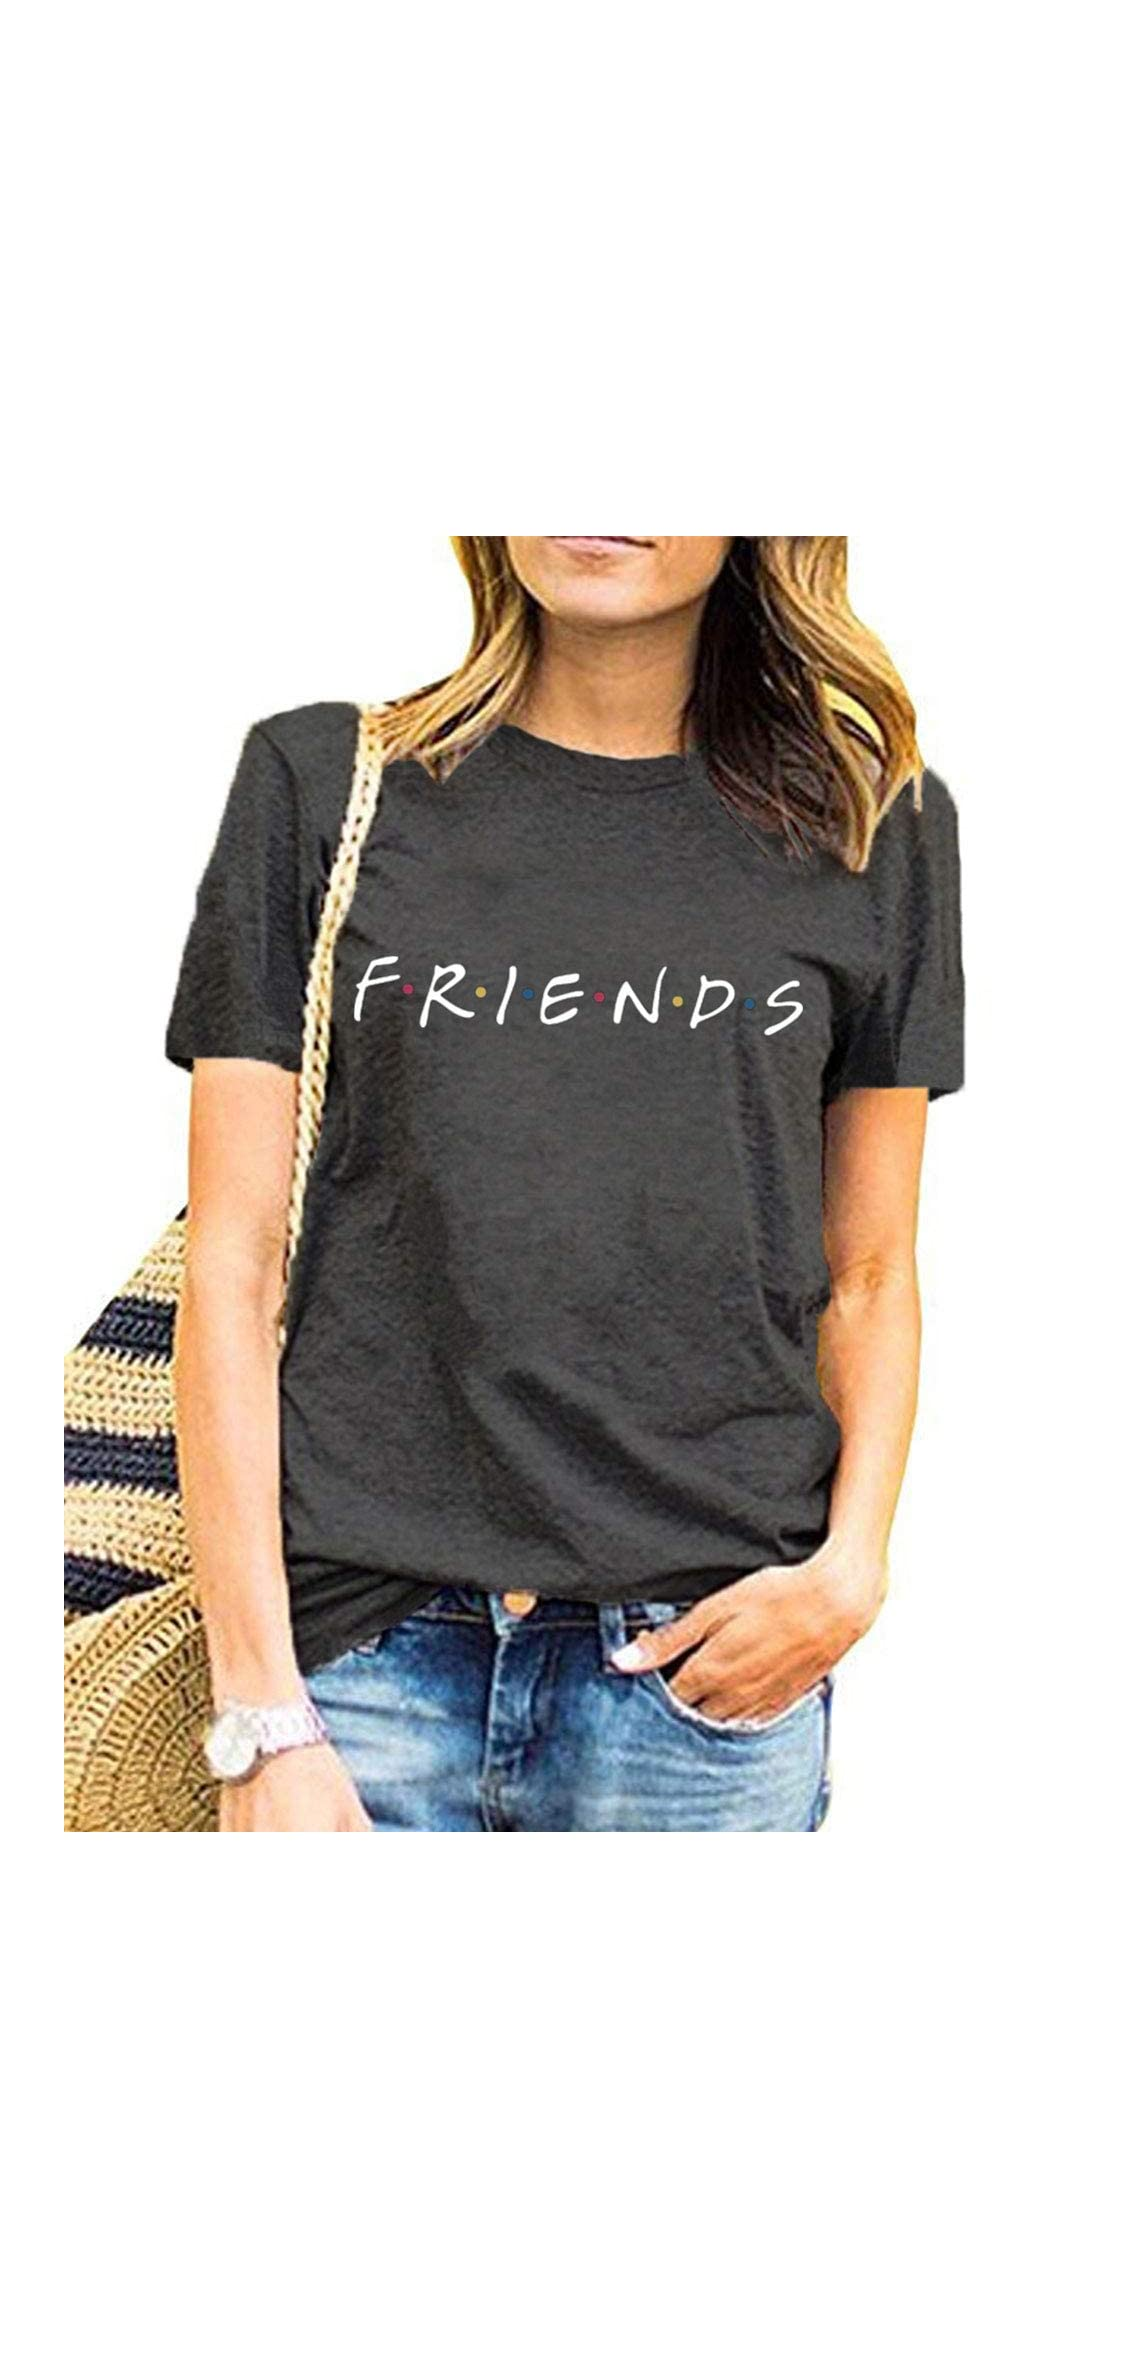 Womens Funny Cute Graphic Summer Casual T Shirt Tops